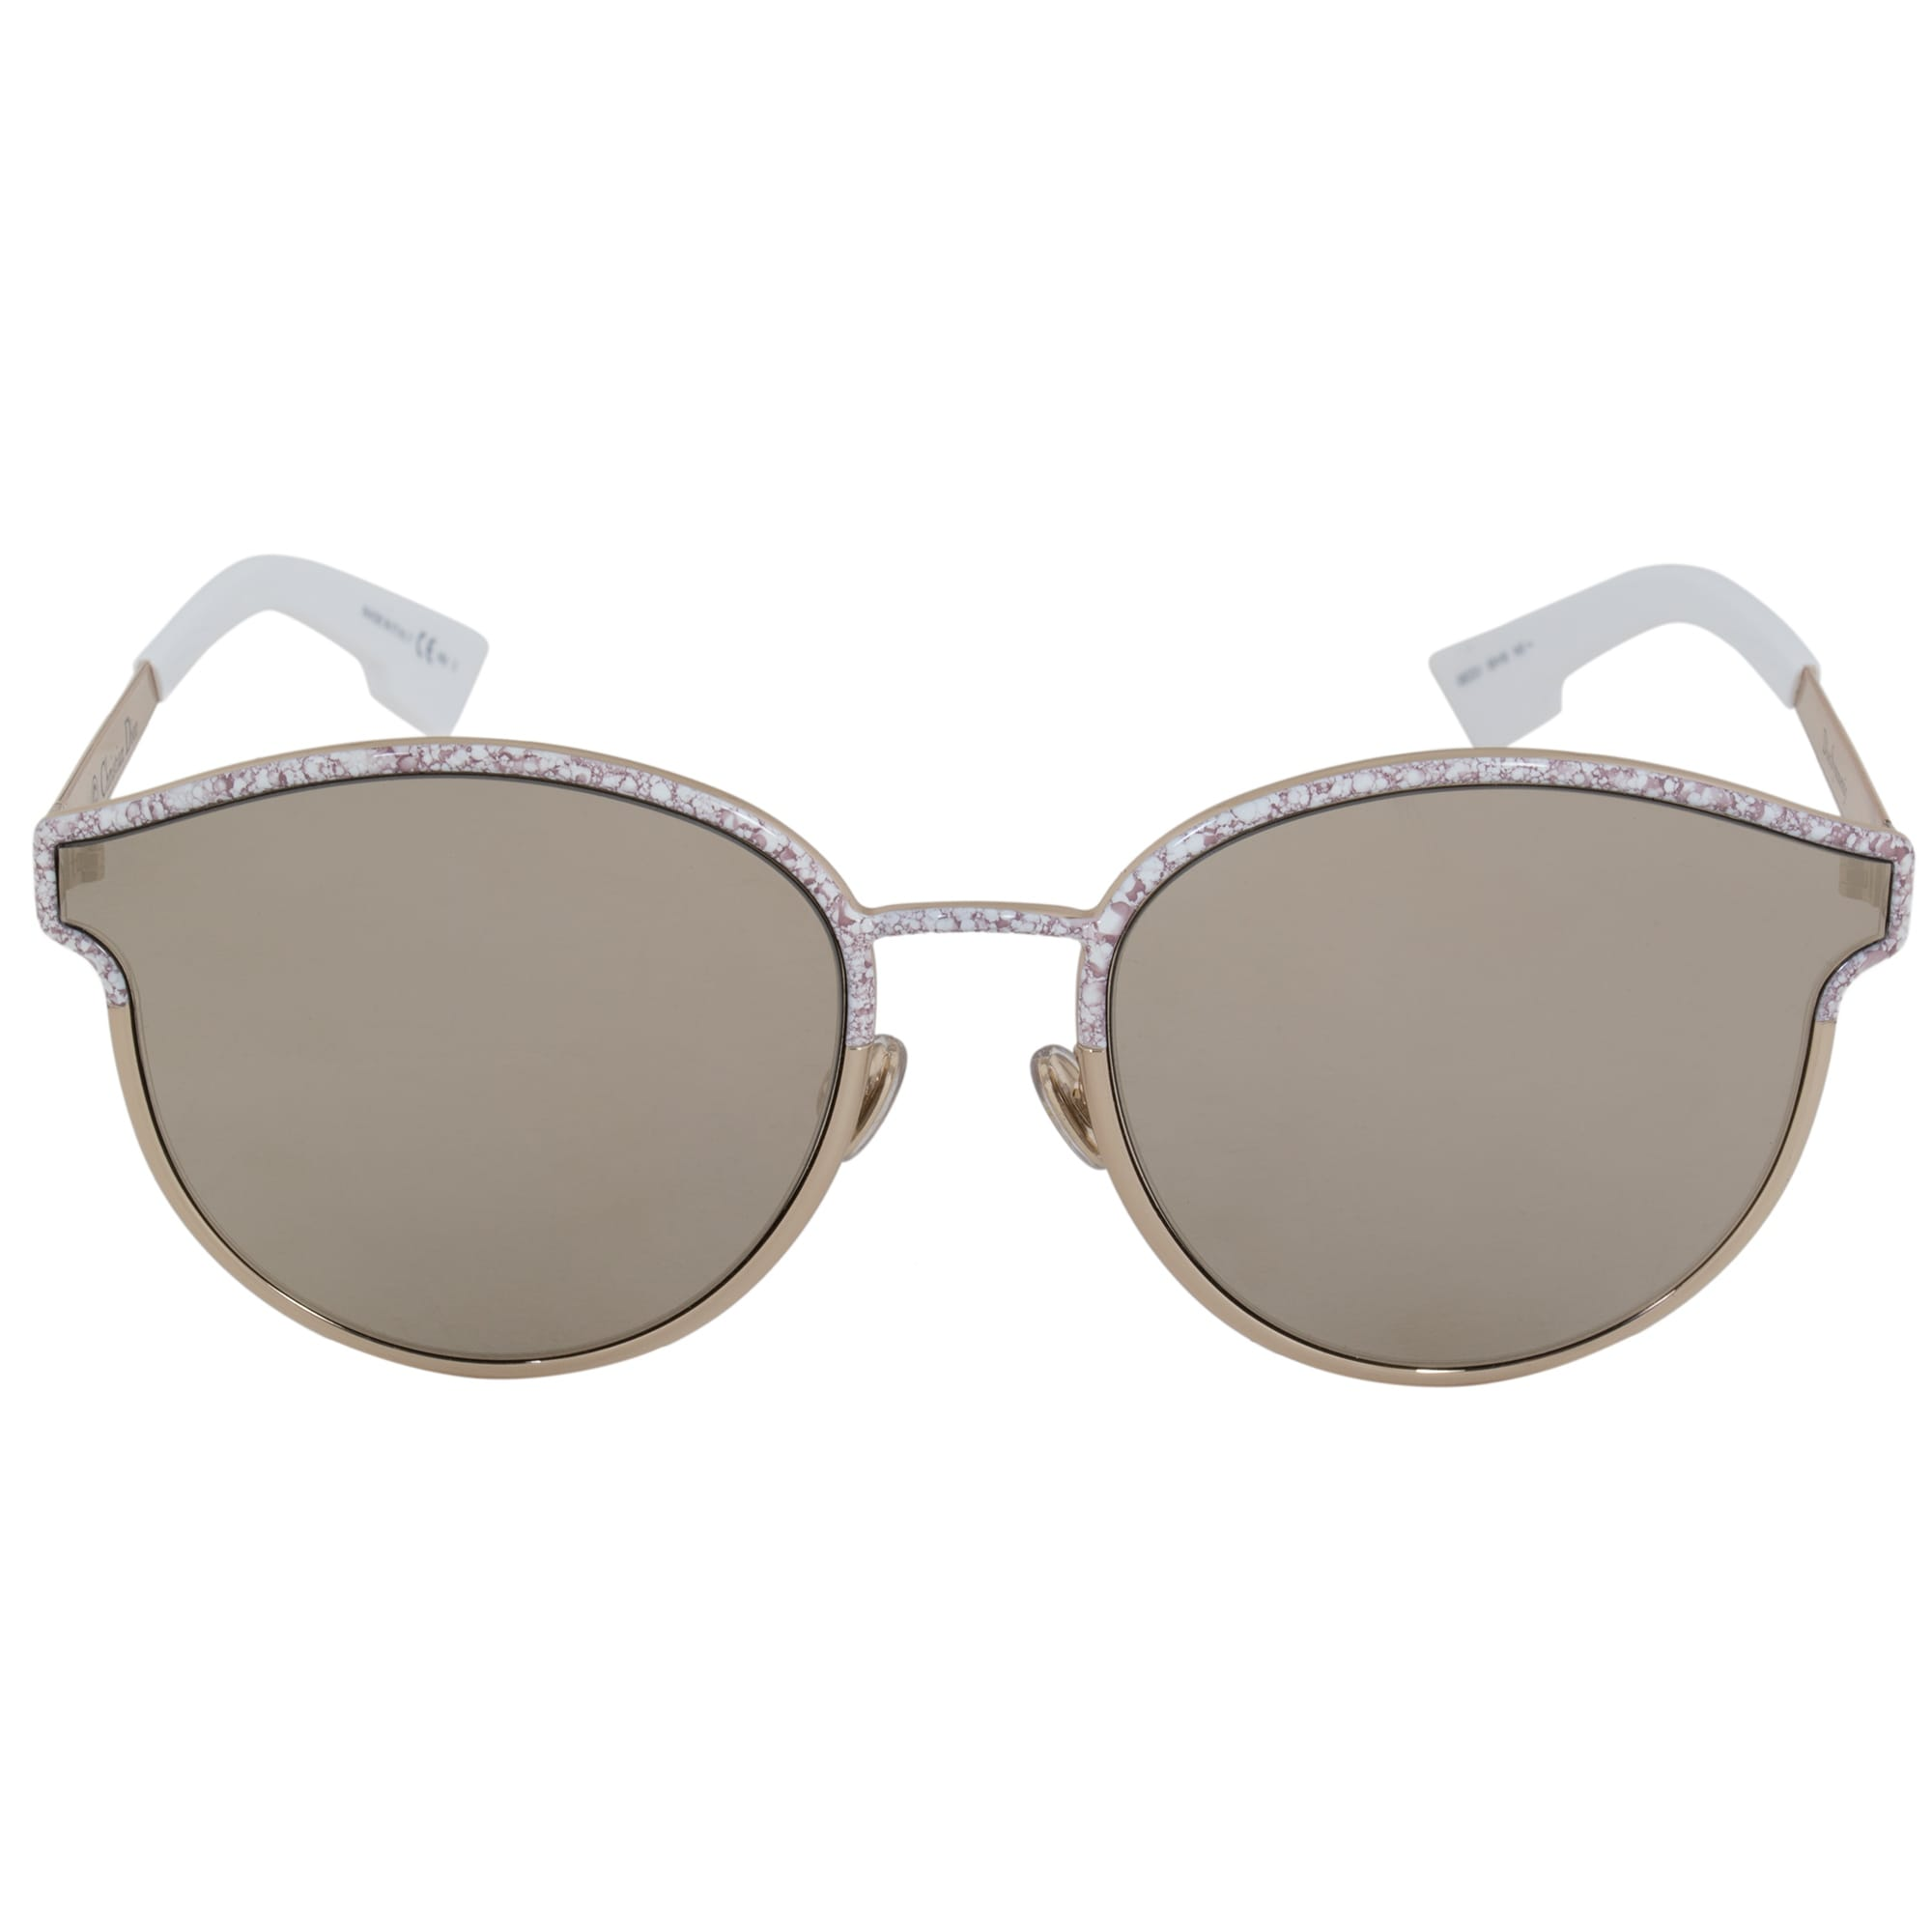 5c661dfcfd Christian Dior Sunglasses